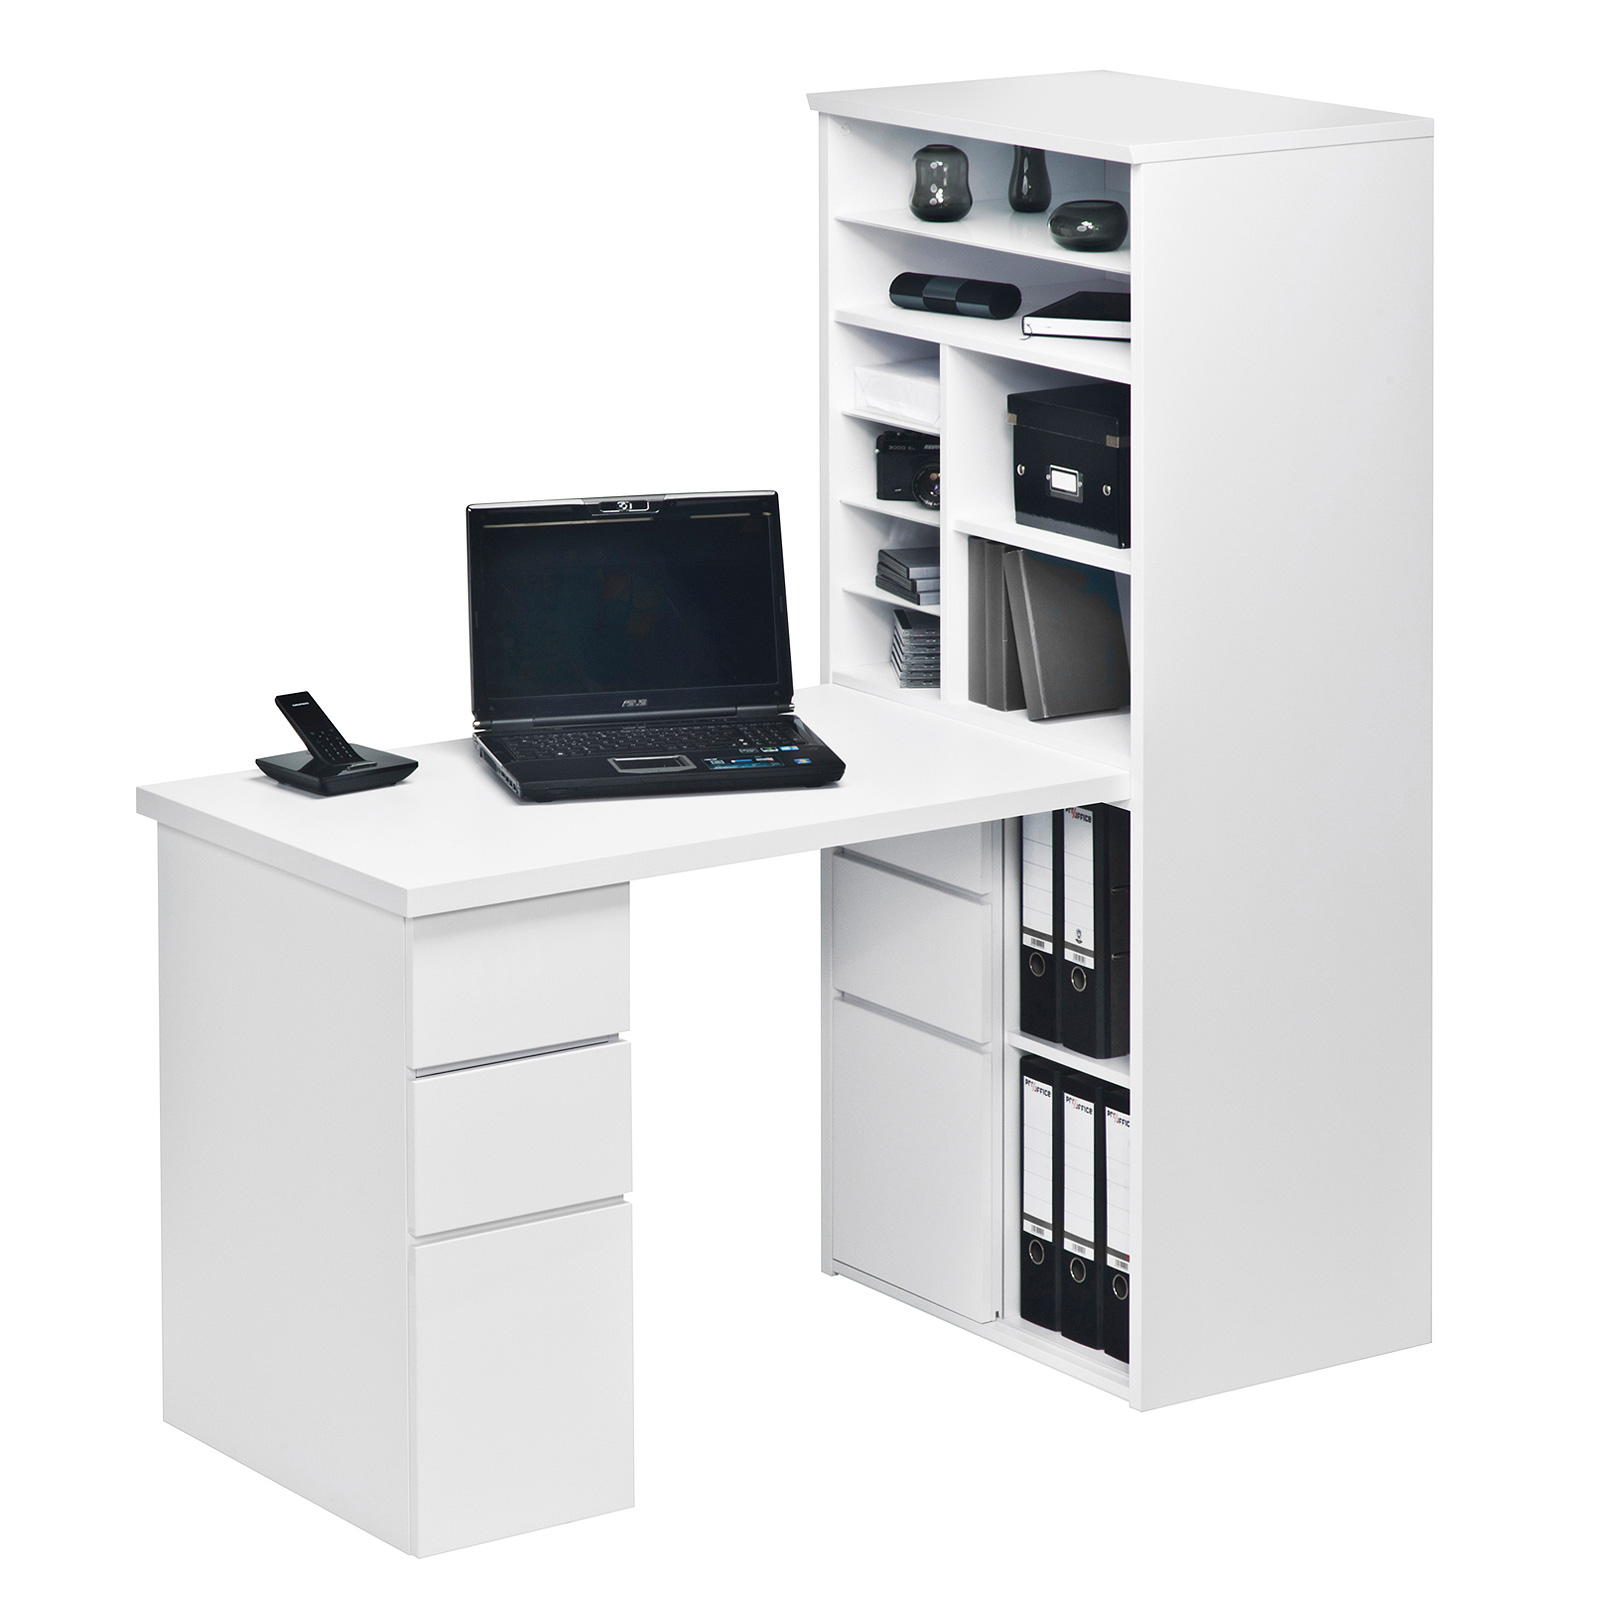 mini office maja 9562 schreibtischkombi regal schreibtisch. Black Bedroom Furniture Sets. Home Design Ideas